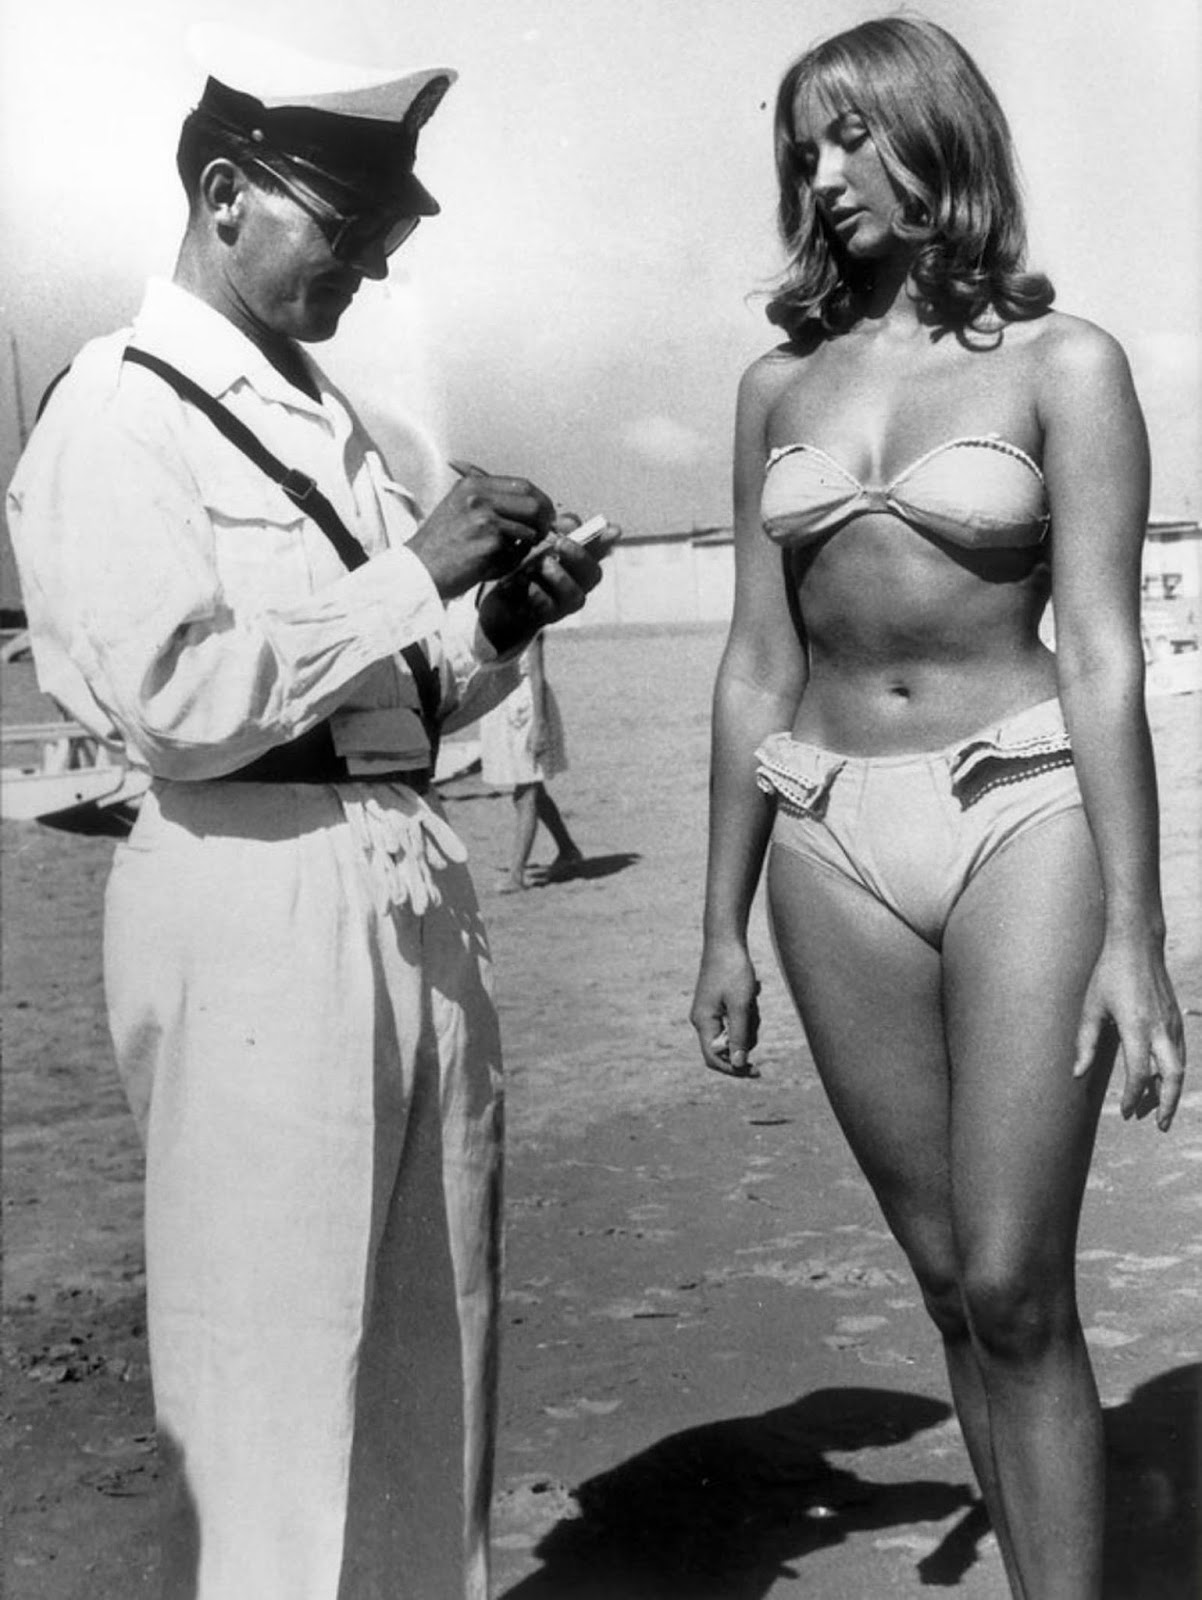 A police officer issuing a woman a ticket for wearing a bikini on an Italian beach '1957